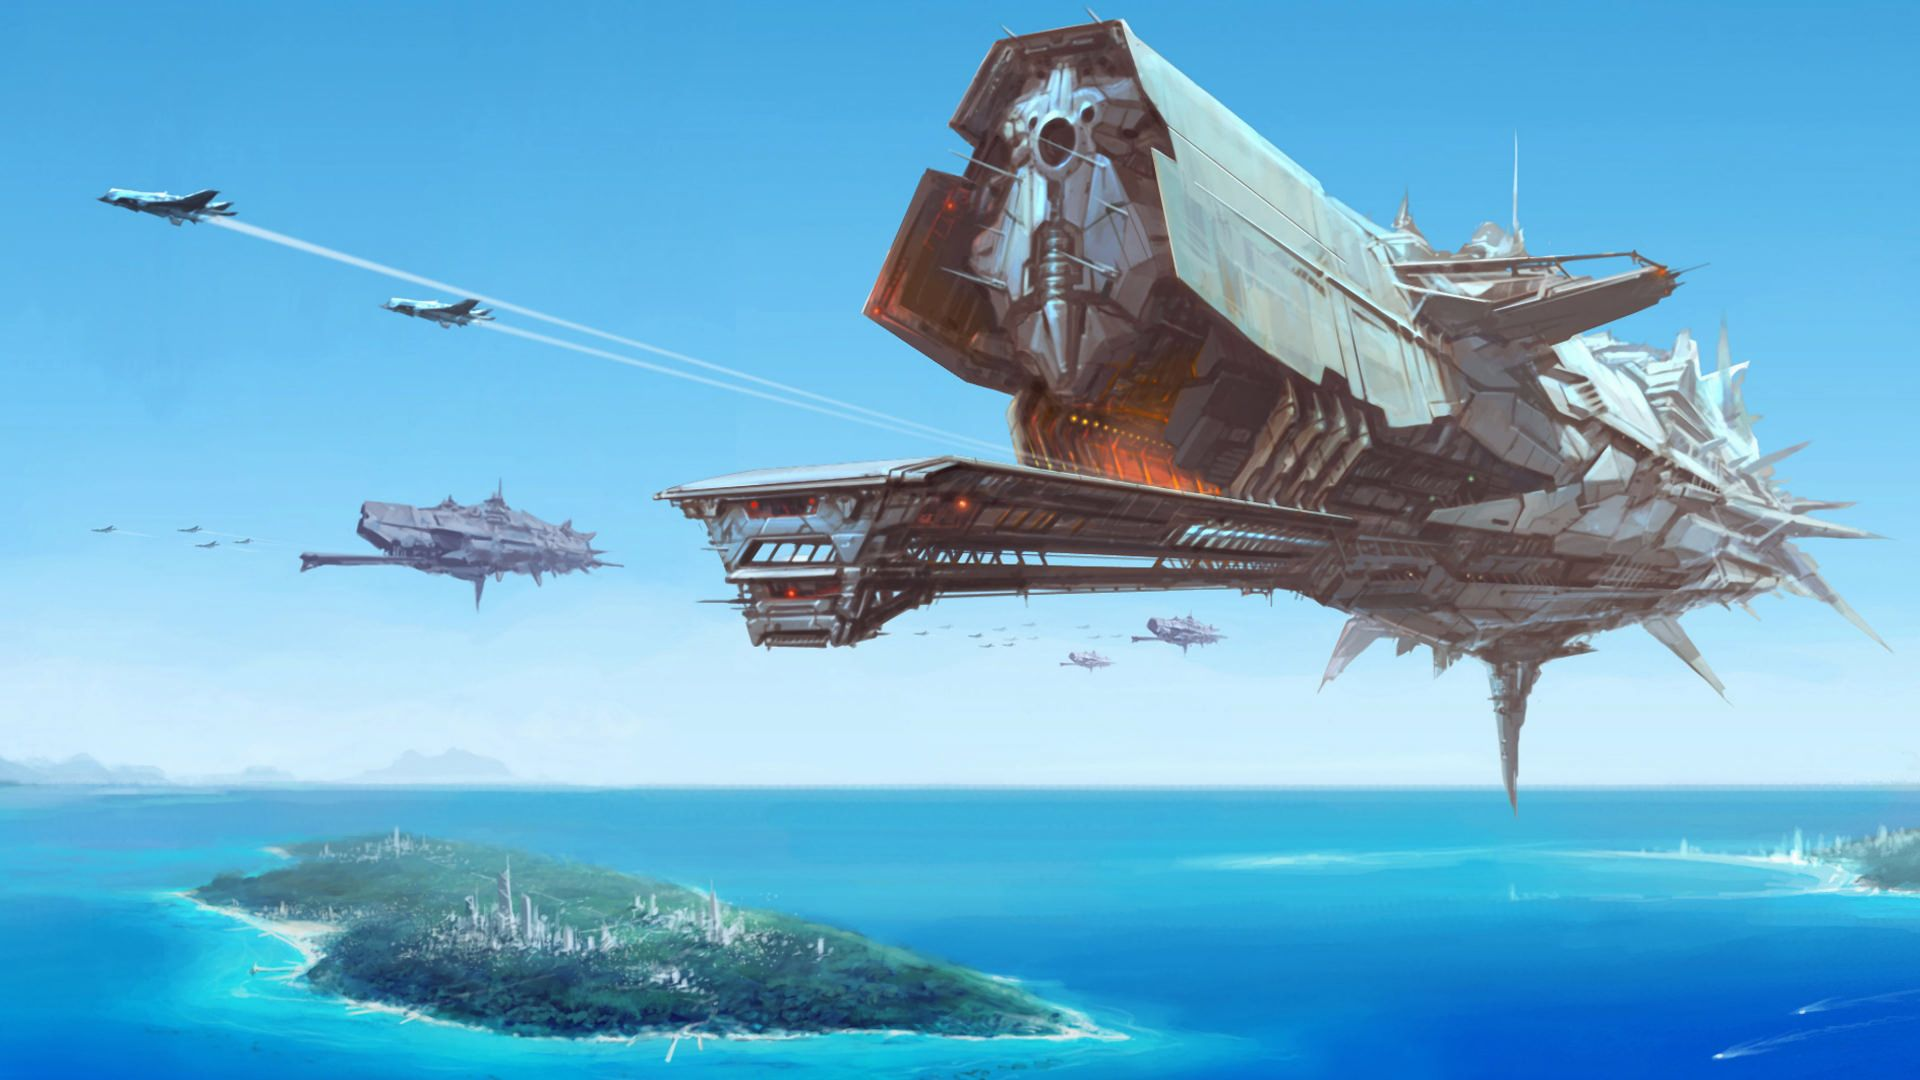 Black themed spaceship conceptual artwork and wallpapers 1 design - Sci Fi Battle Space Ship Wallpaper 1920 X Impressive Digital Painting Of A Enormous Battle Space Ship Flying Over A Futuristic City Island